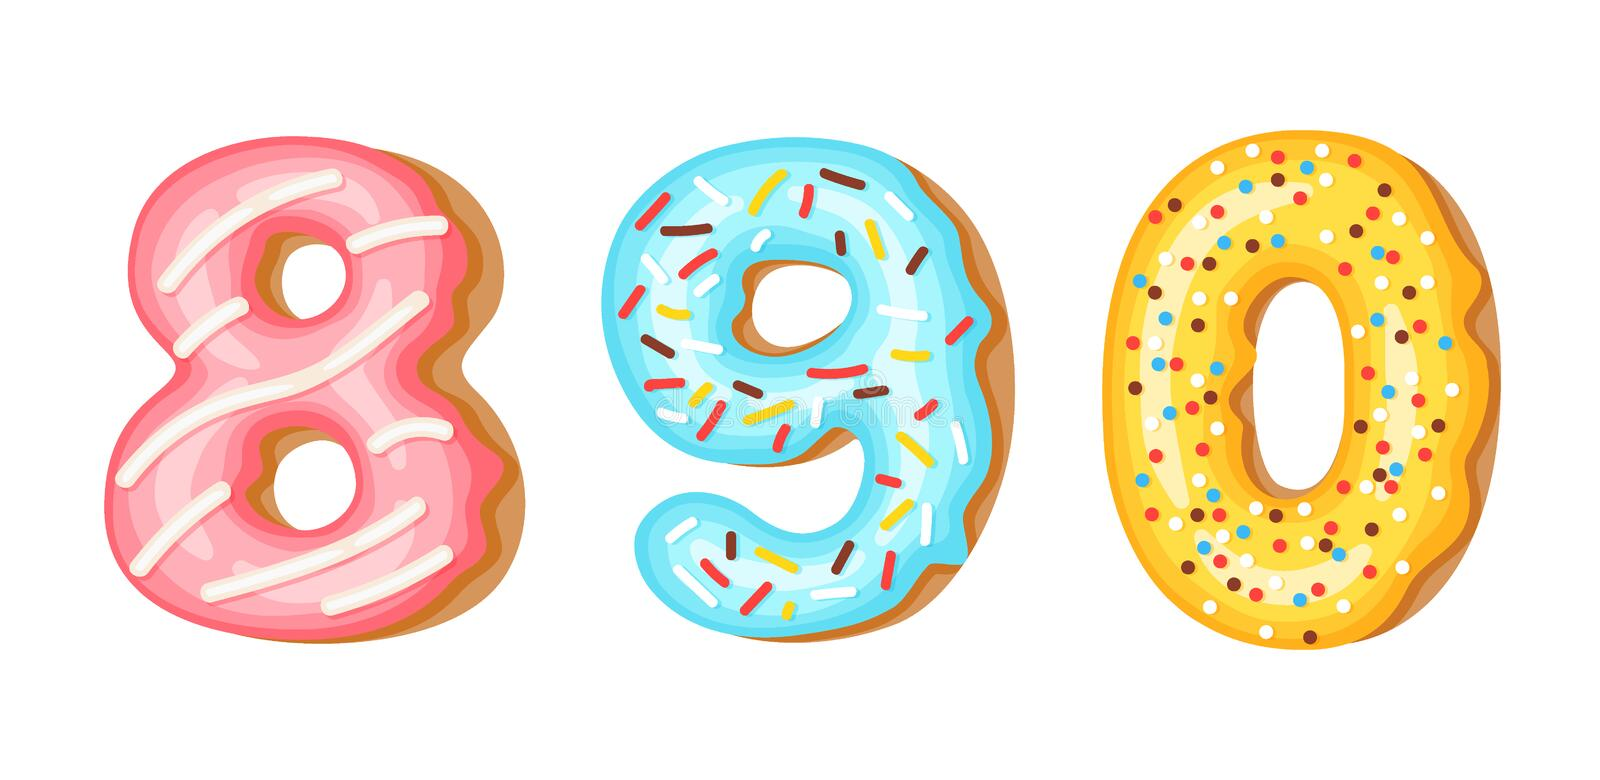 Donut icing numbers digits - 8, 9, 0. Font of donuts. Bakery sweet alphabet. Donut alphabet latters A b C isolated on. White background, vector illustration royalty free illustration